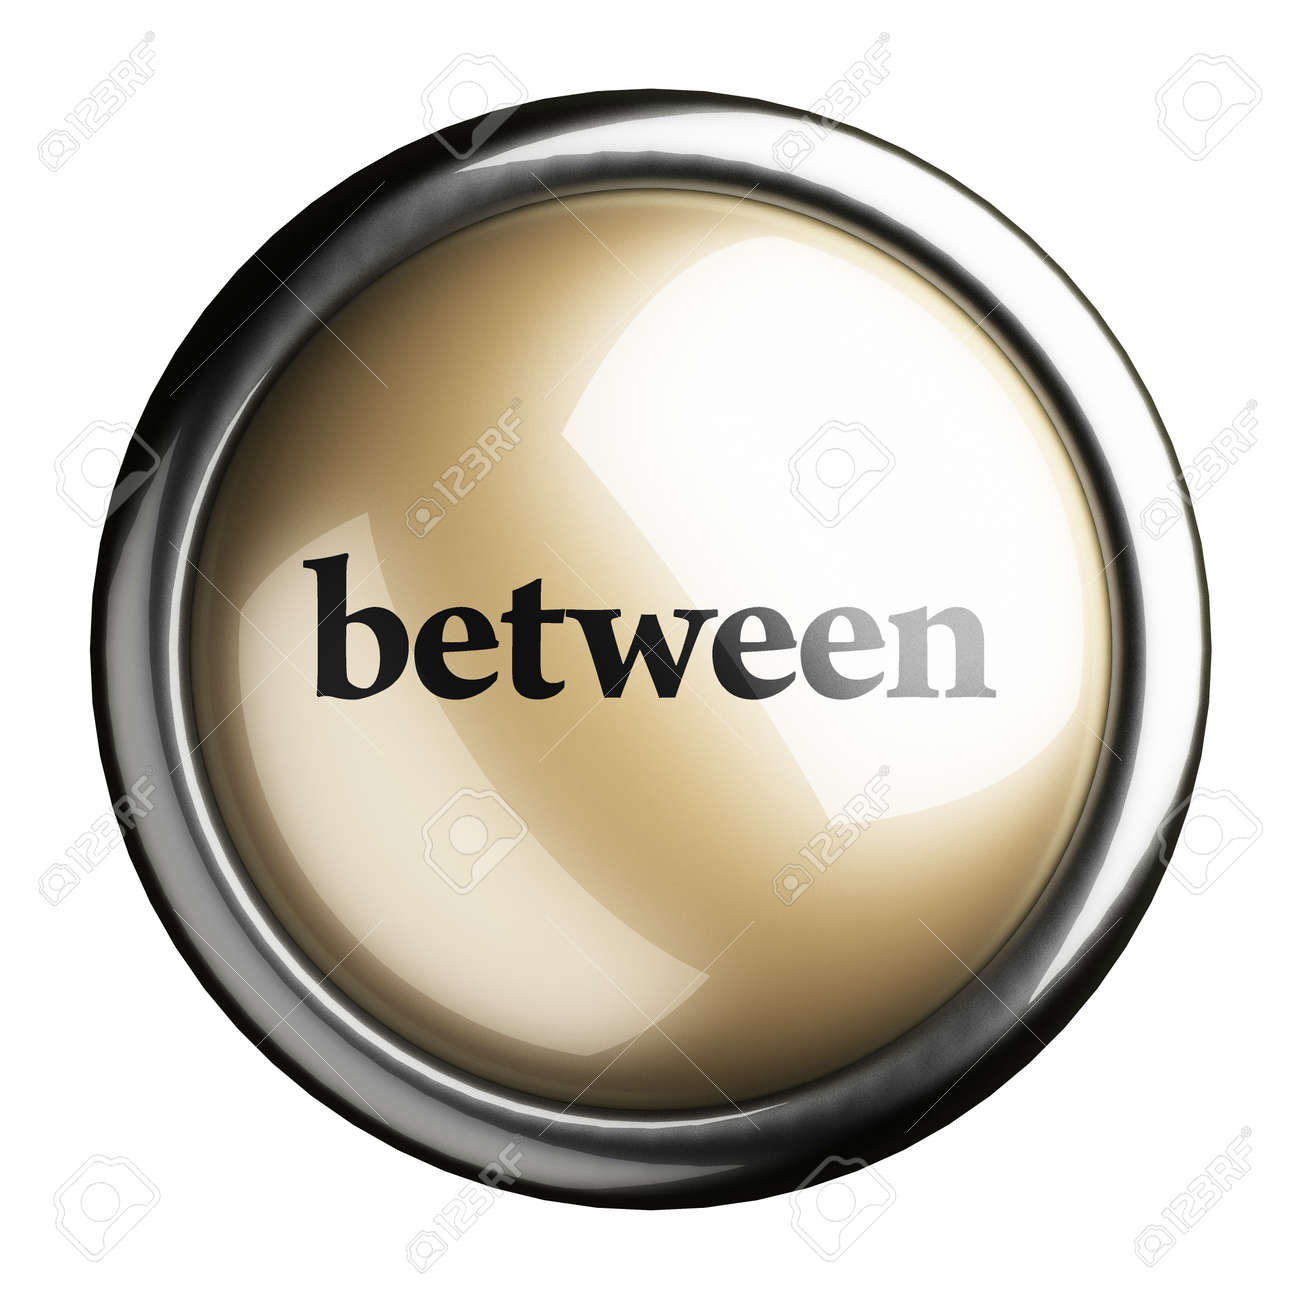 Word on the button Stock Photo - 17650590